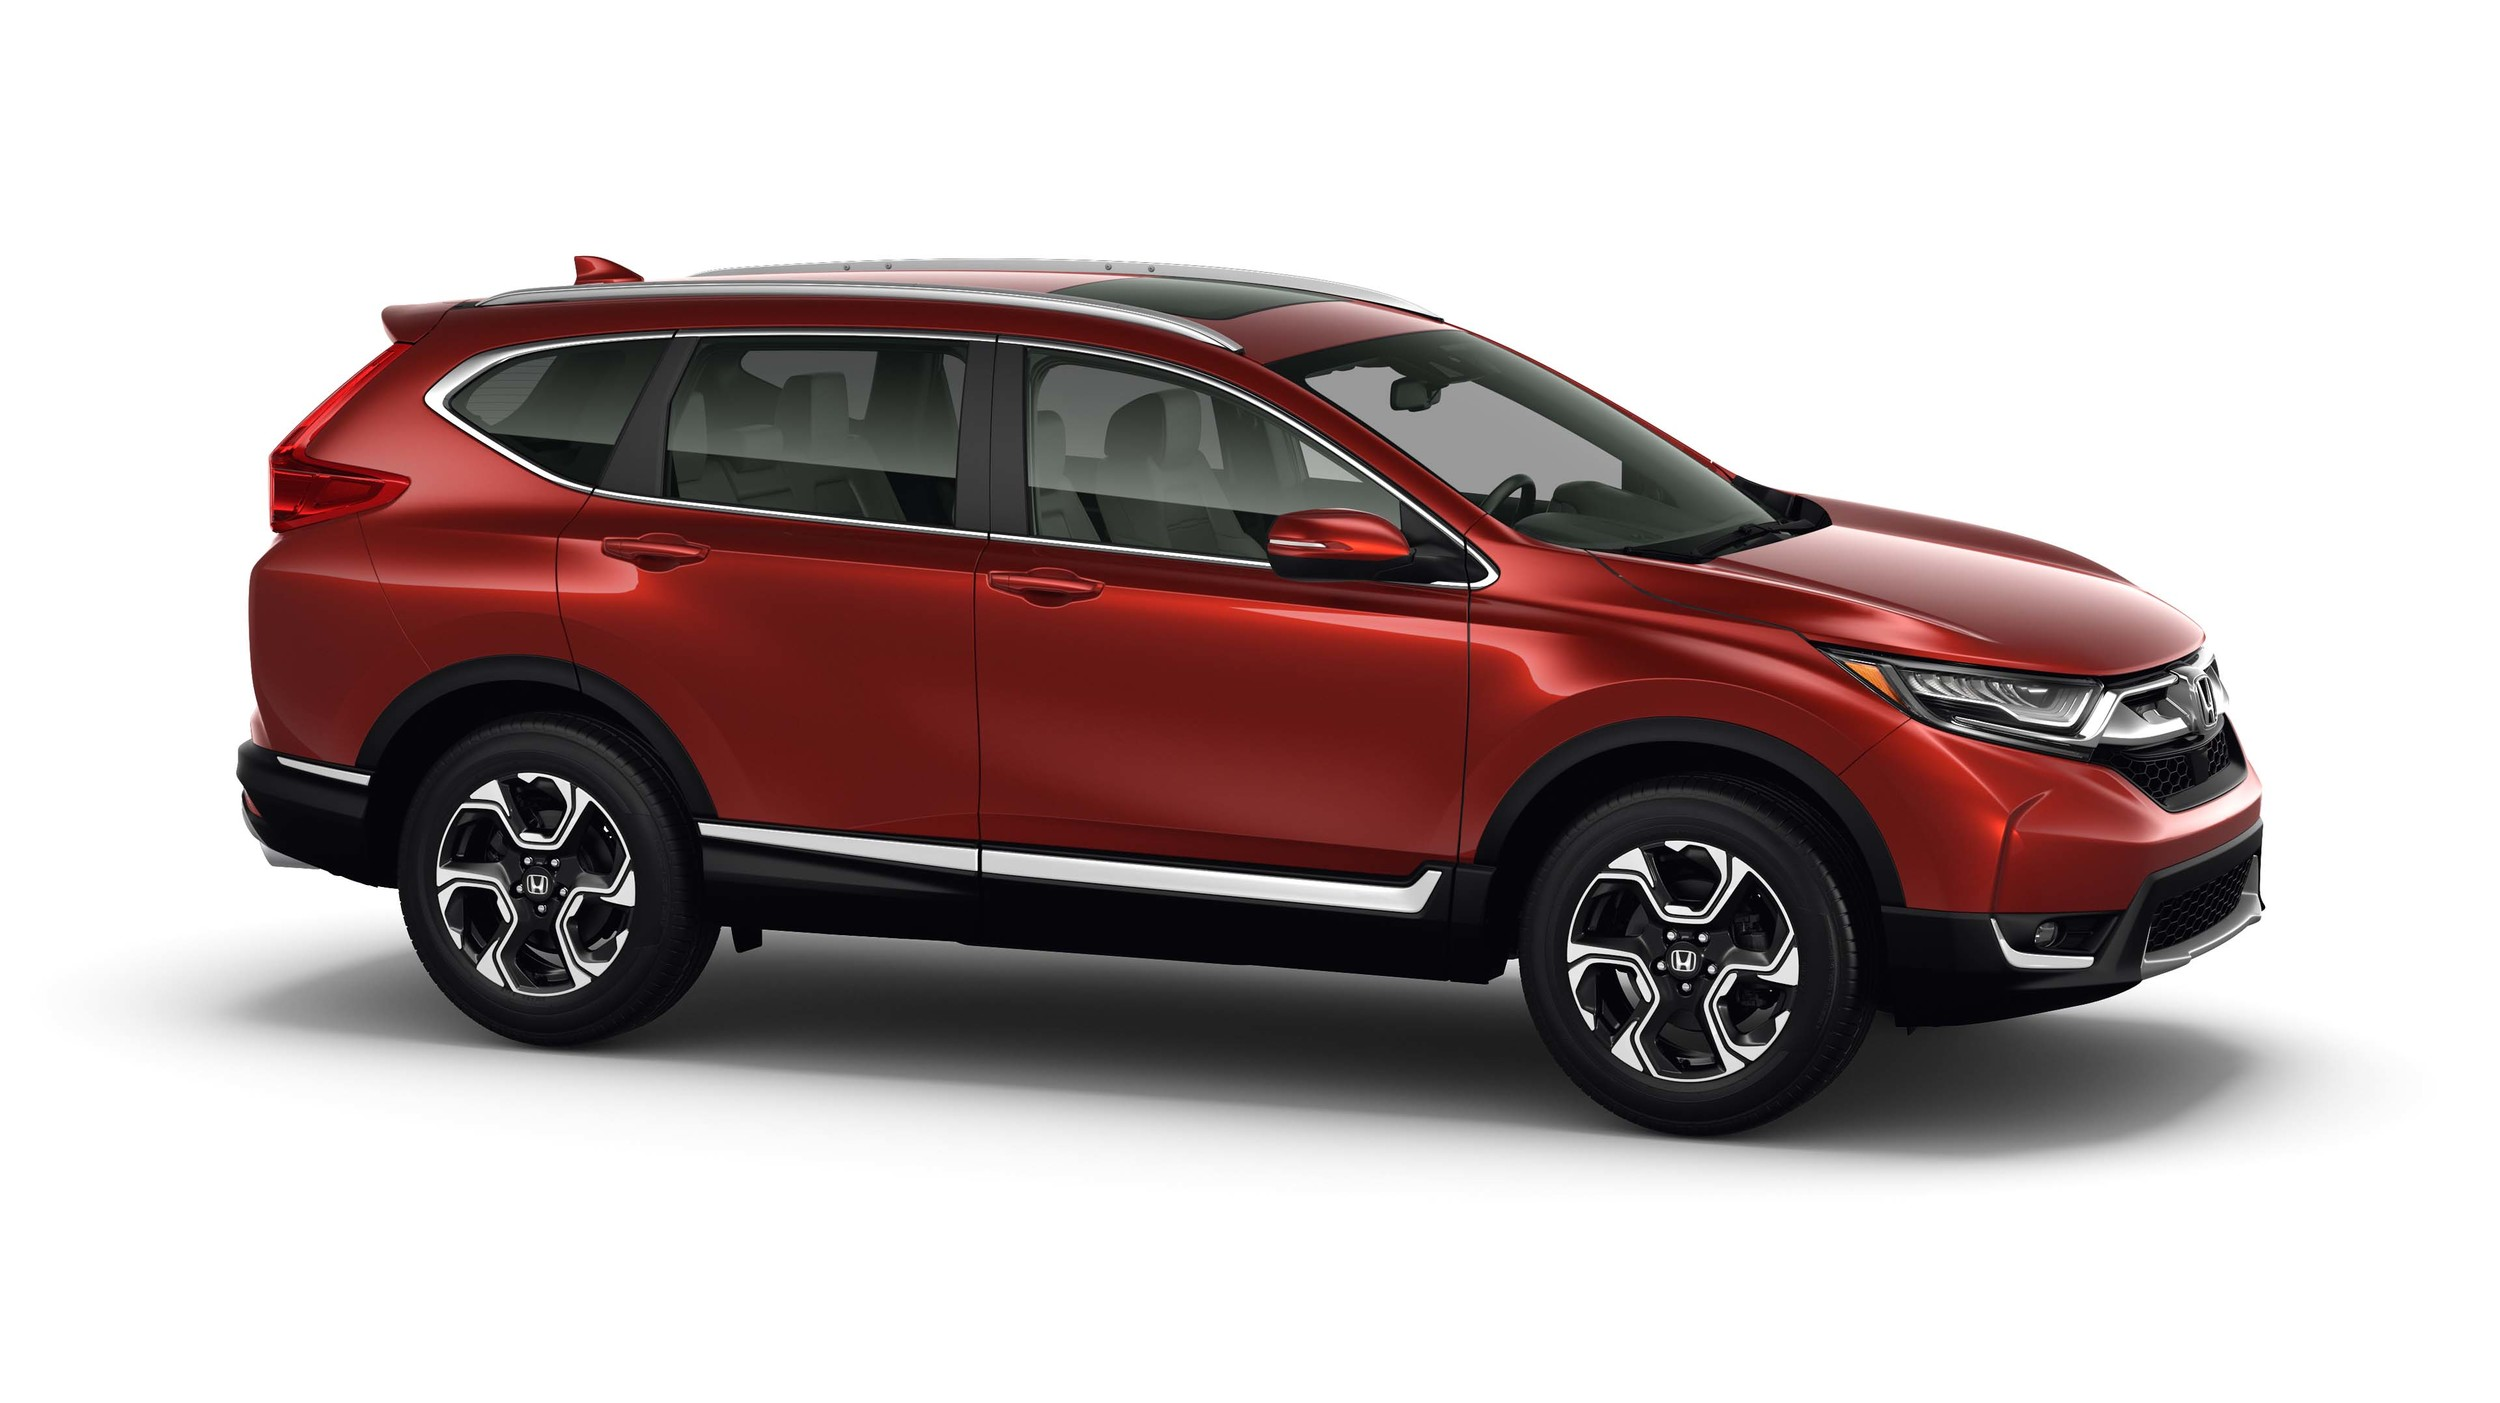 Pictures of the 2017 Honda CR vs